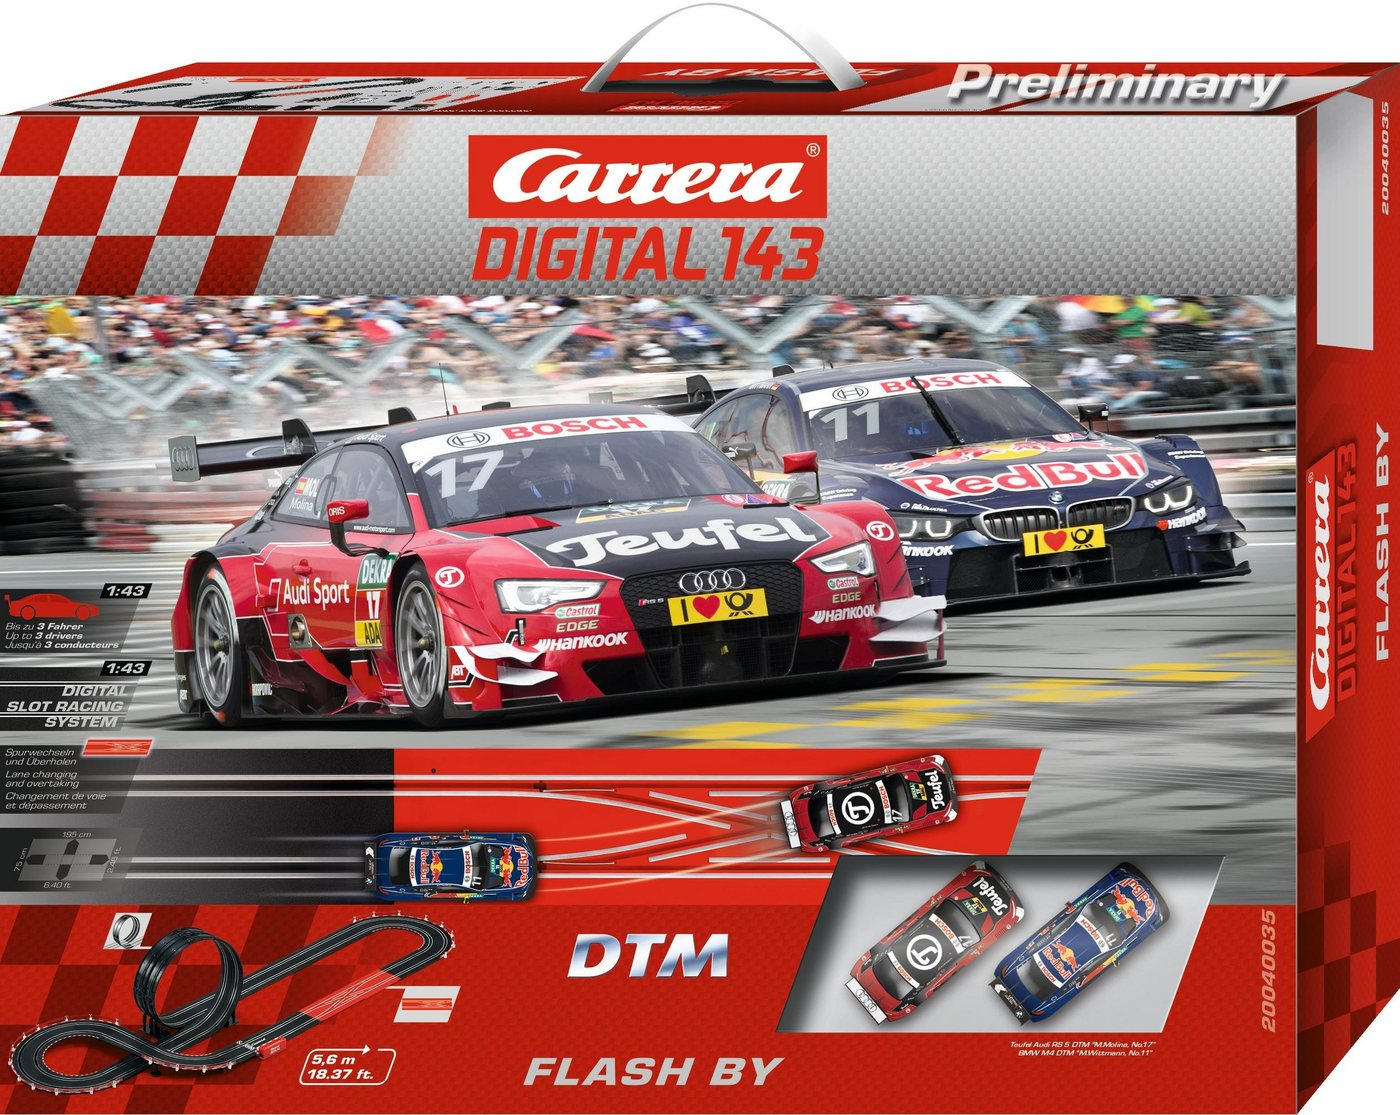 Carrera Autorennbahn, »Carrera® Digital 143 DTM Flash By«